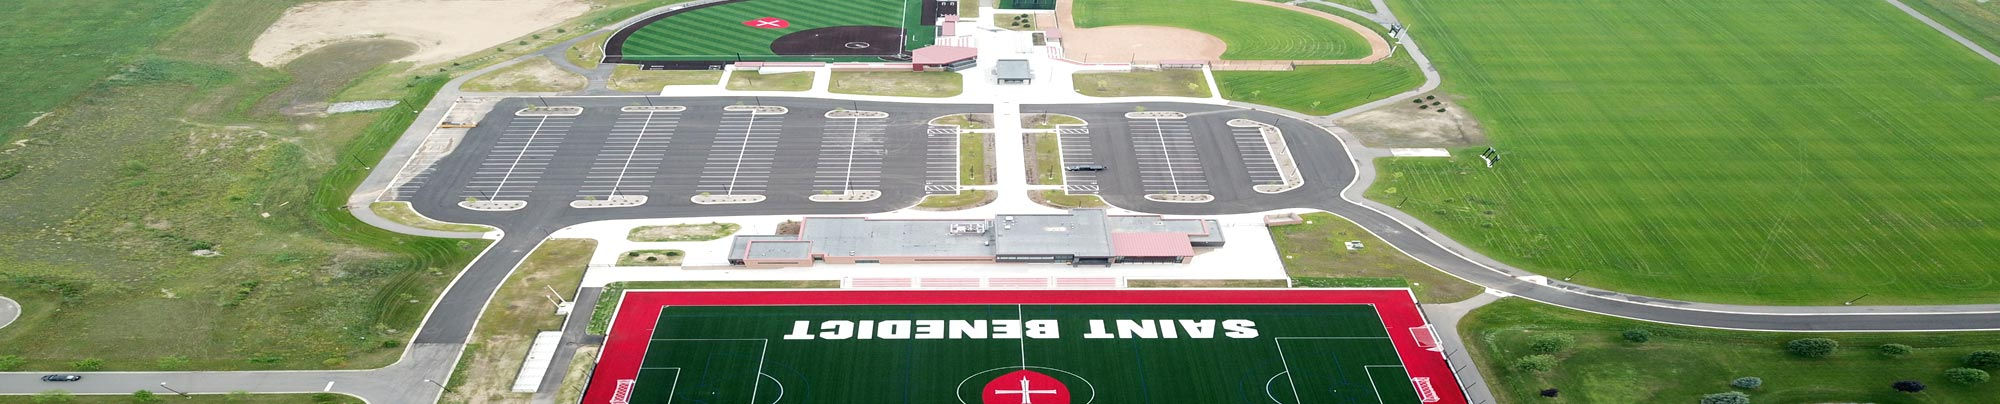 COLLEGE OF ST. BENEDICT, ST. JOESPH, MN ATHLETIC COMPLEX